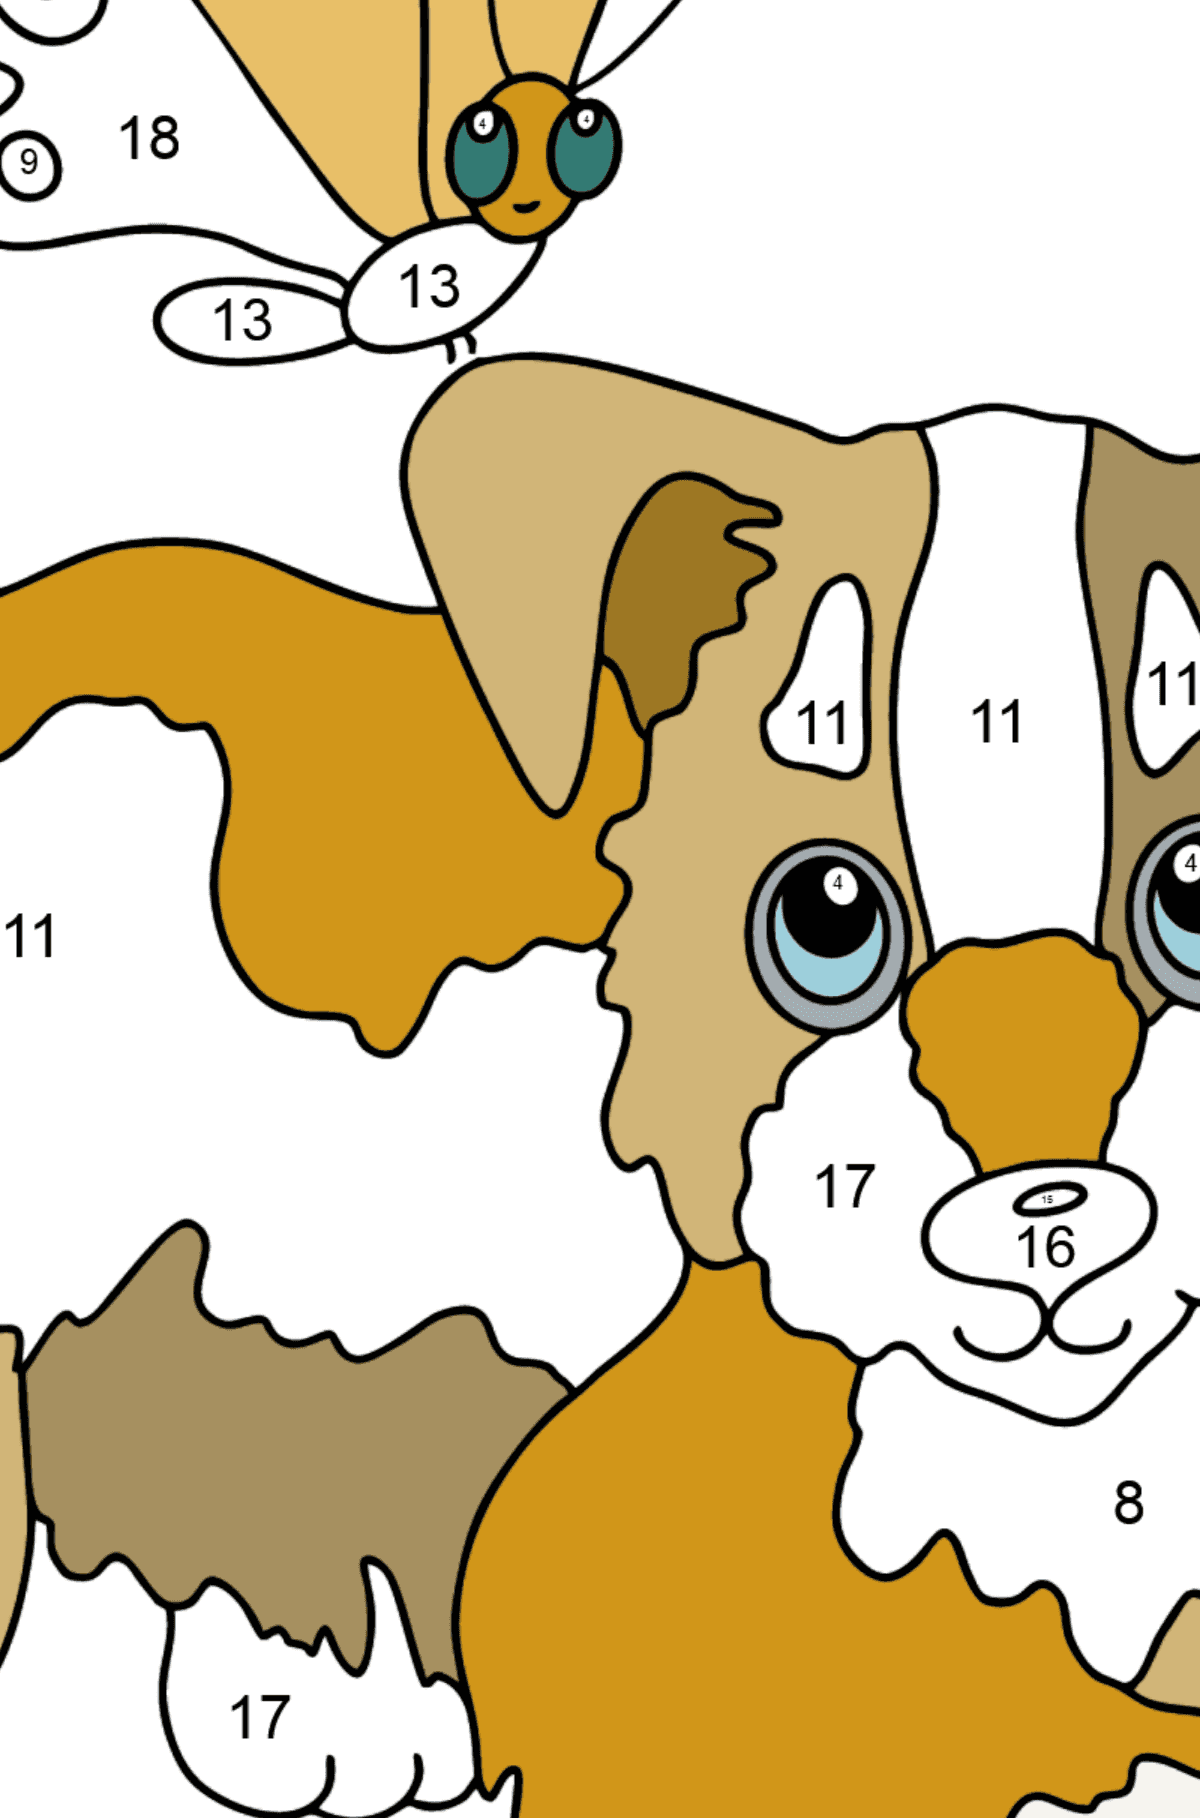 Coloring Page - A Dog is Playing with a Butterfly - Coloring by Numbers for Kids